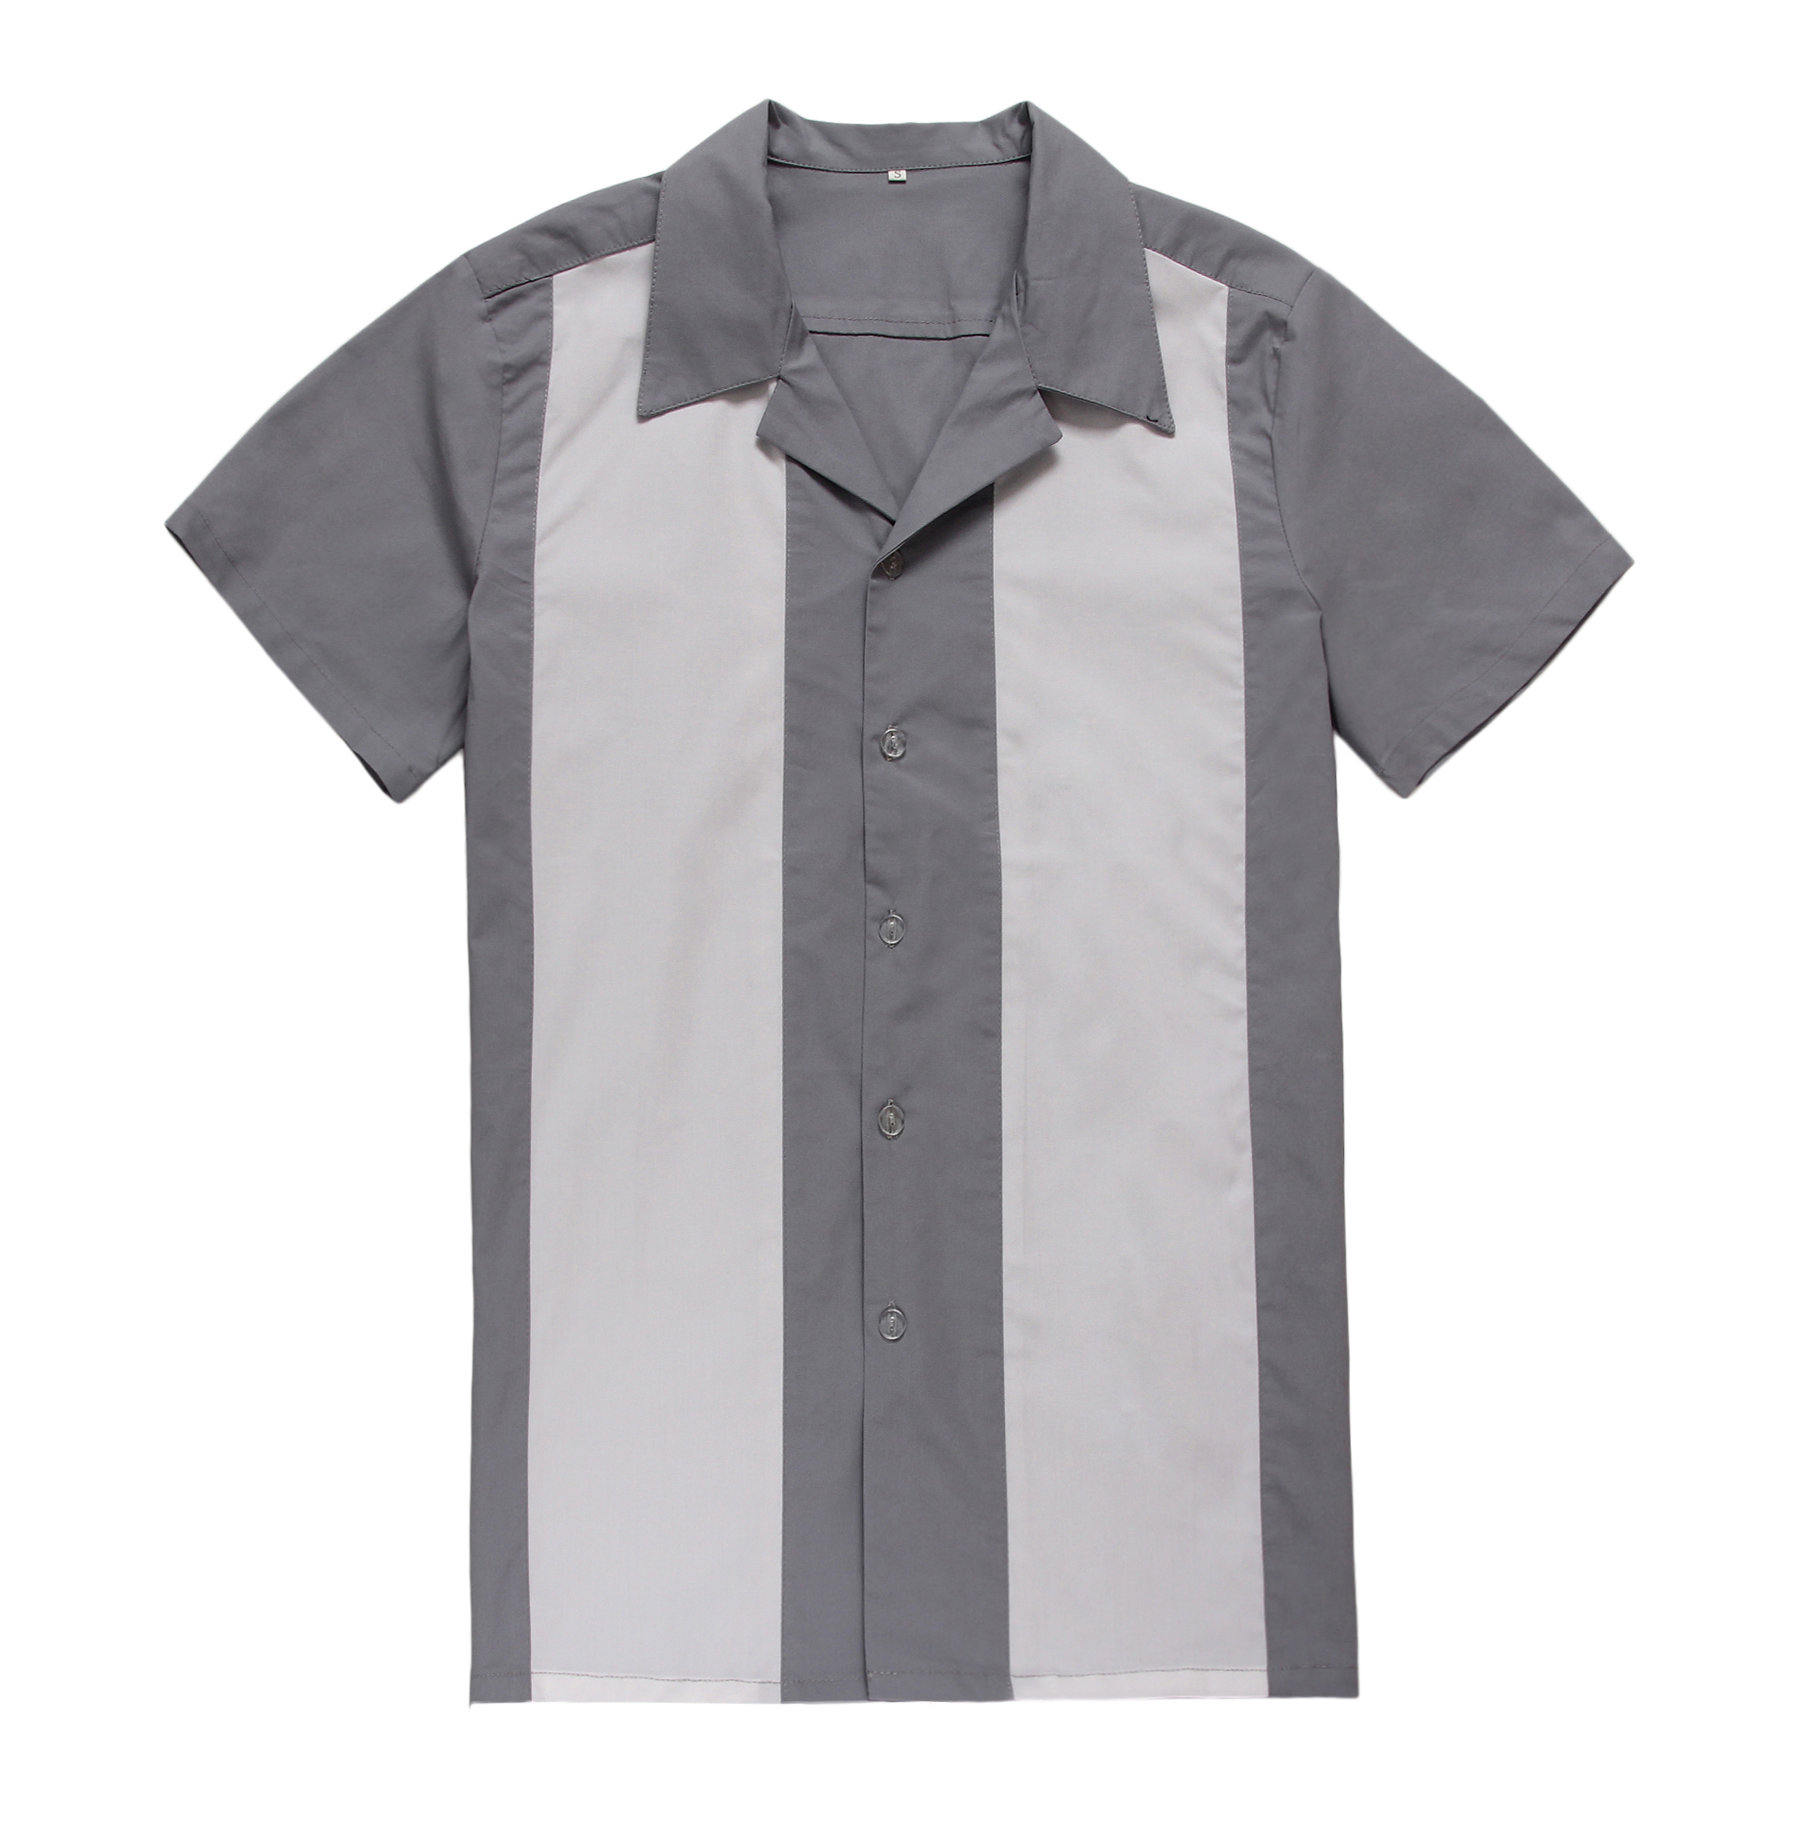 2015 new real camisa solid polo shirt mens fashion cool design short - Rockabilly Clothing Short Sleeve Button Gray White Cotton Uk Designer Casual Shirts For Men China